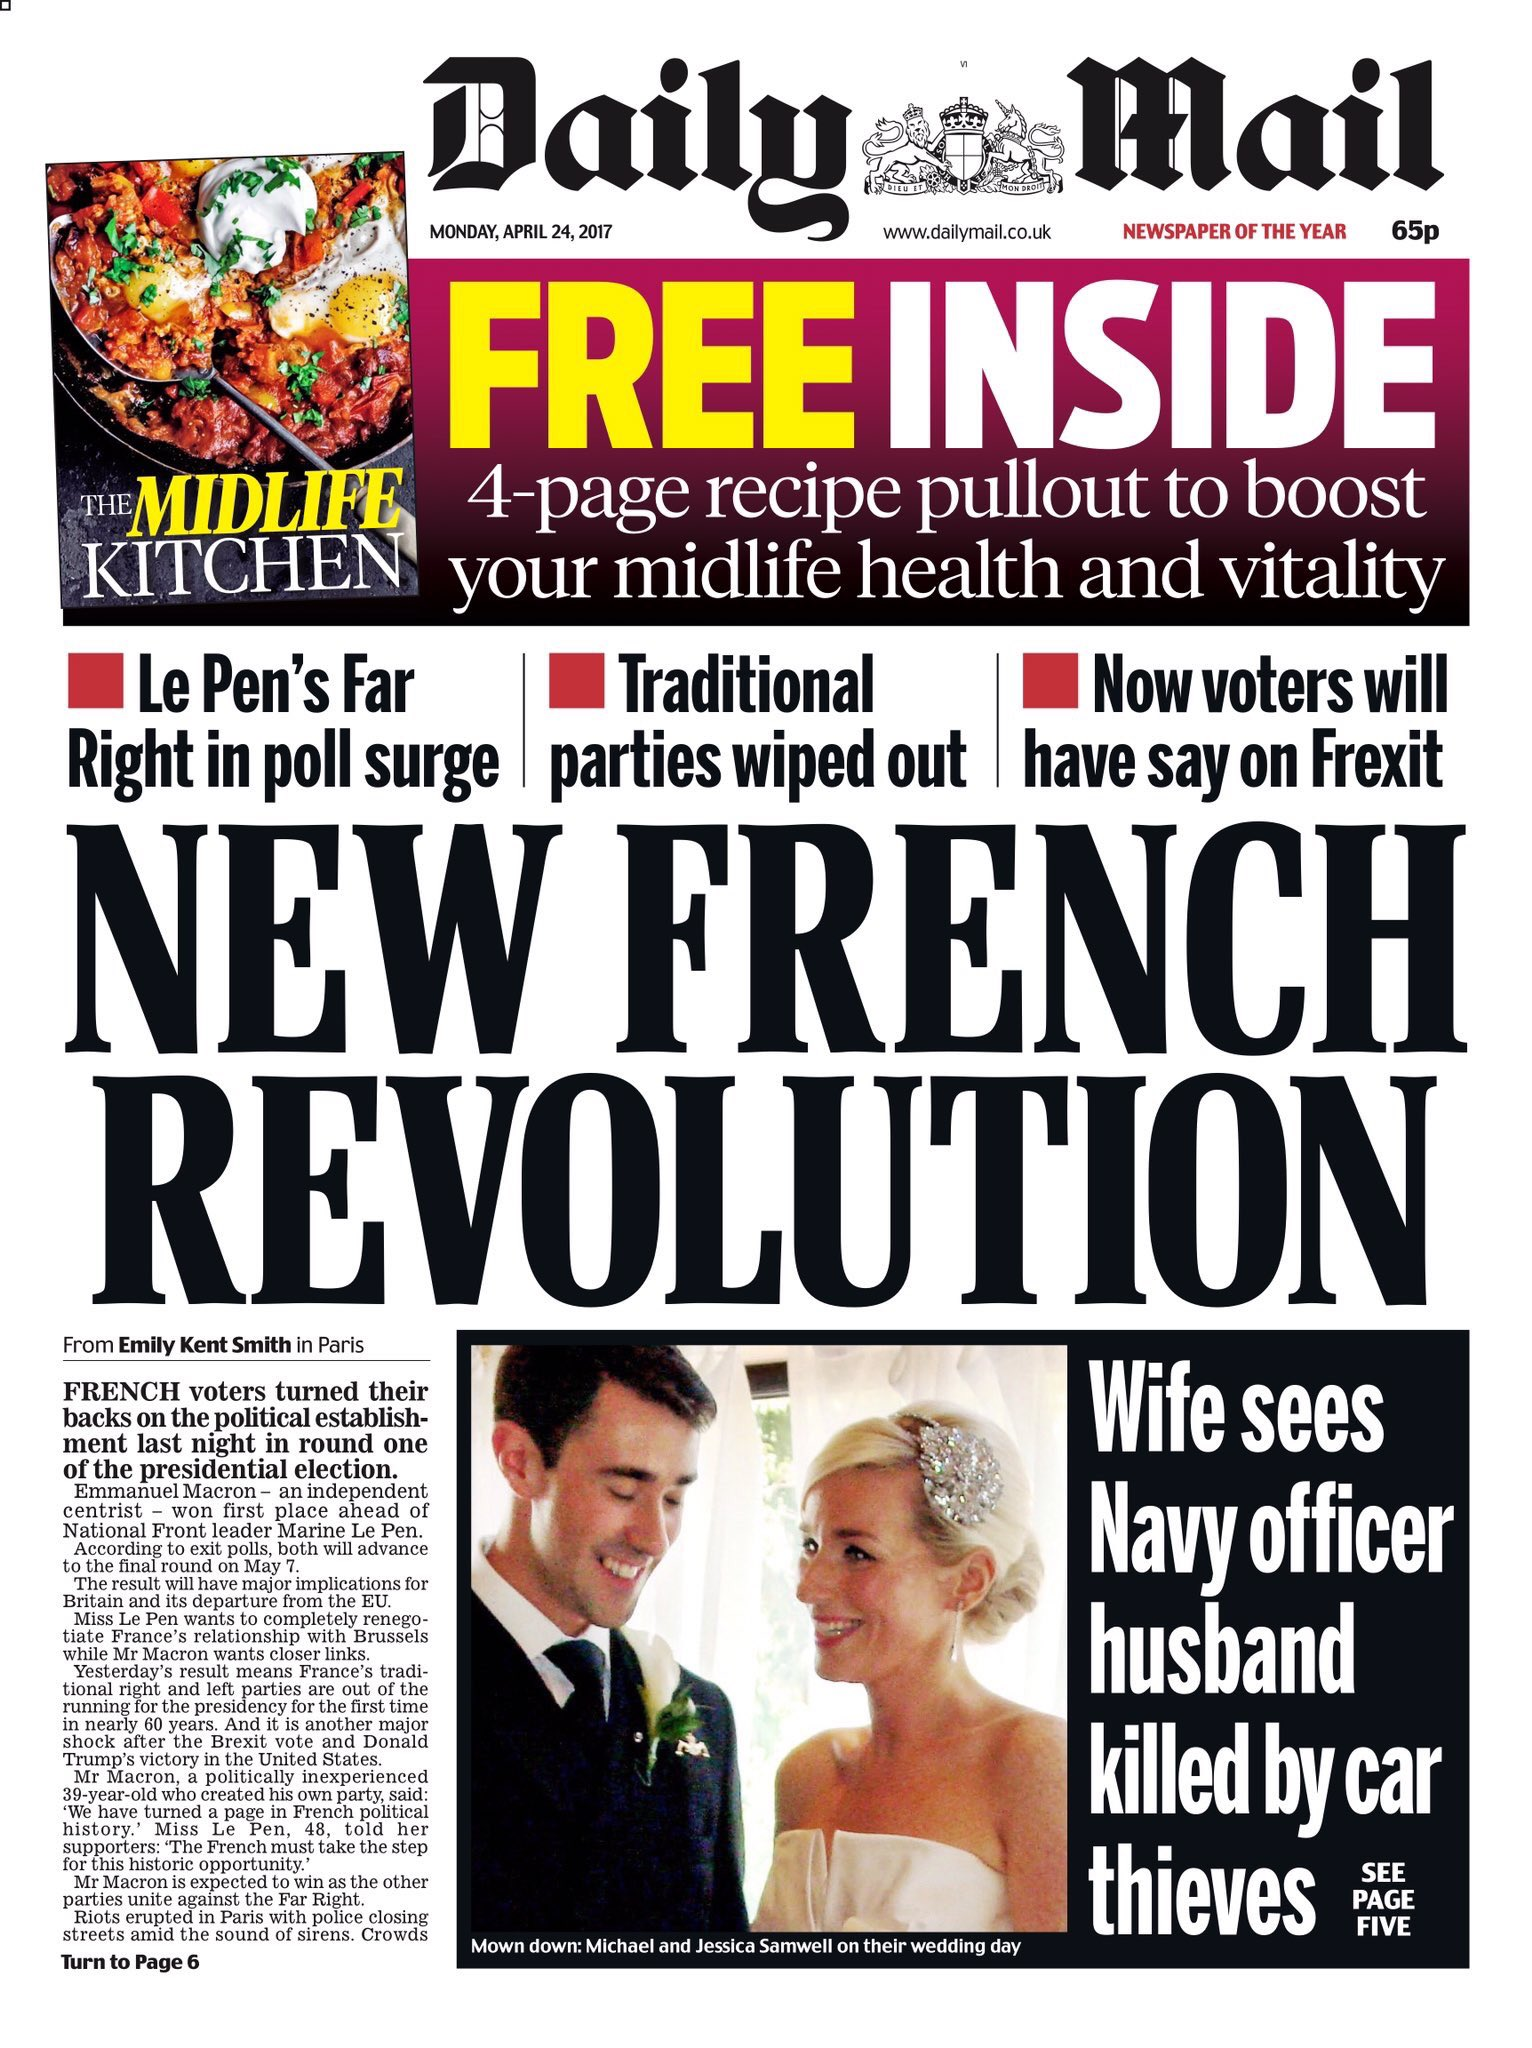 """""""But if we go with this front page won't it look like we actively support fascists?"""" """"And your problem is...?"""" https://t.co/5v2PL9qUsk"""